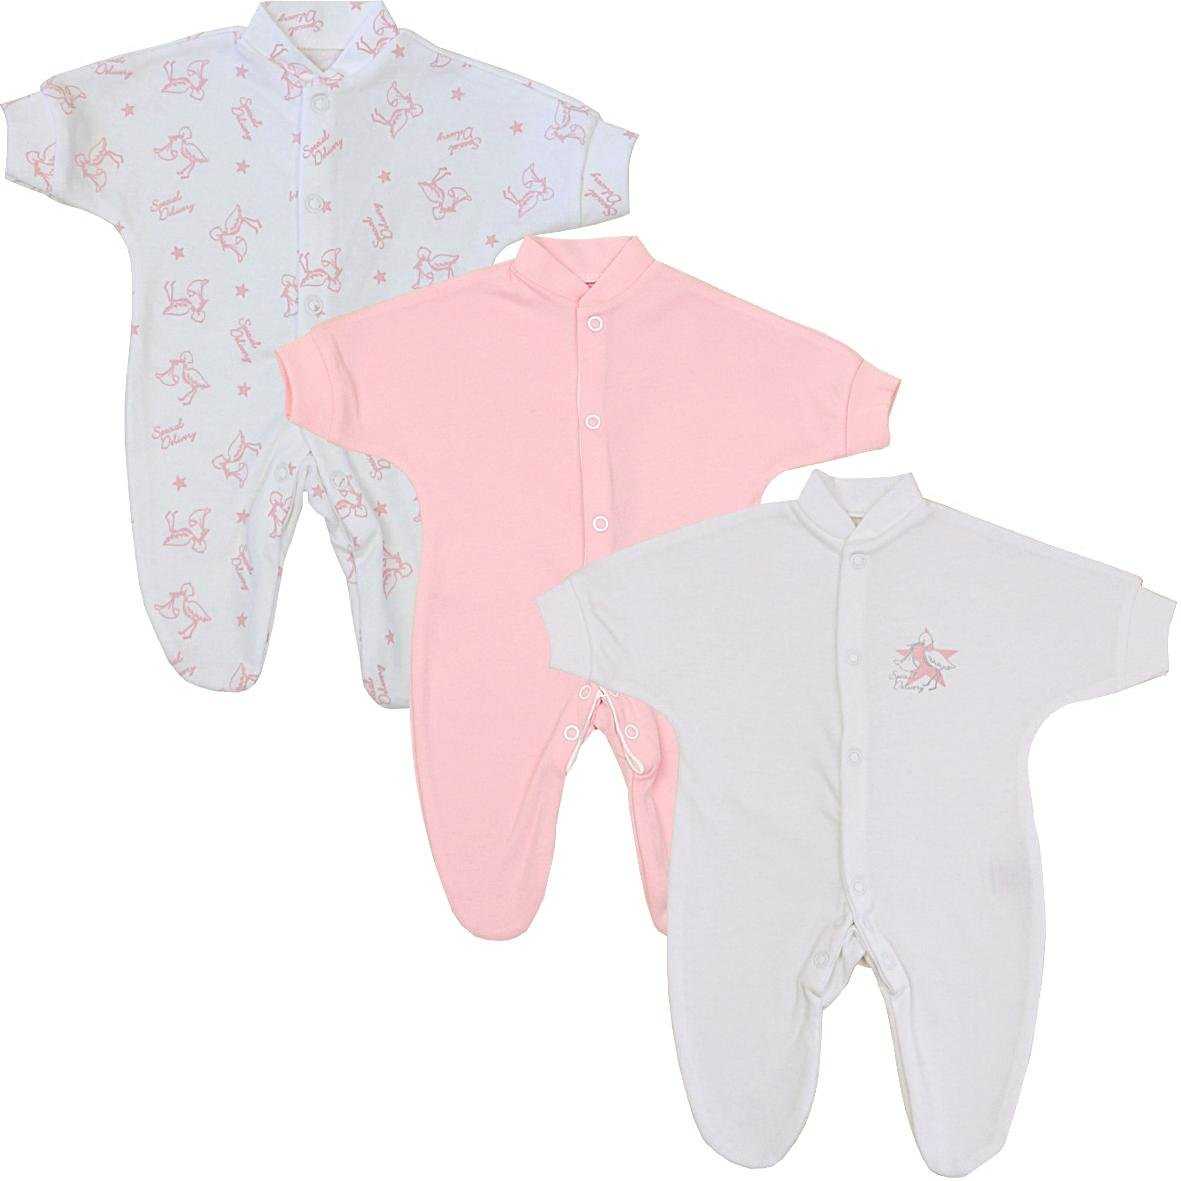 Preemie Baby Clothes Pack of 3 Sleepers / Footies 1.5 - 7.5lb Pink Teddy P3